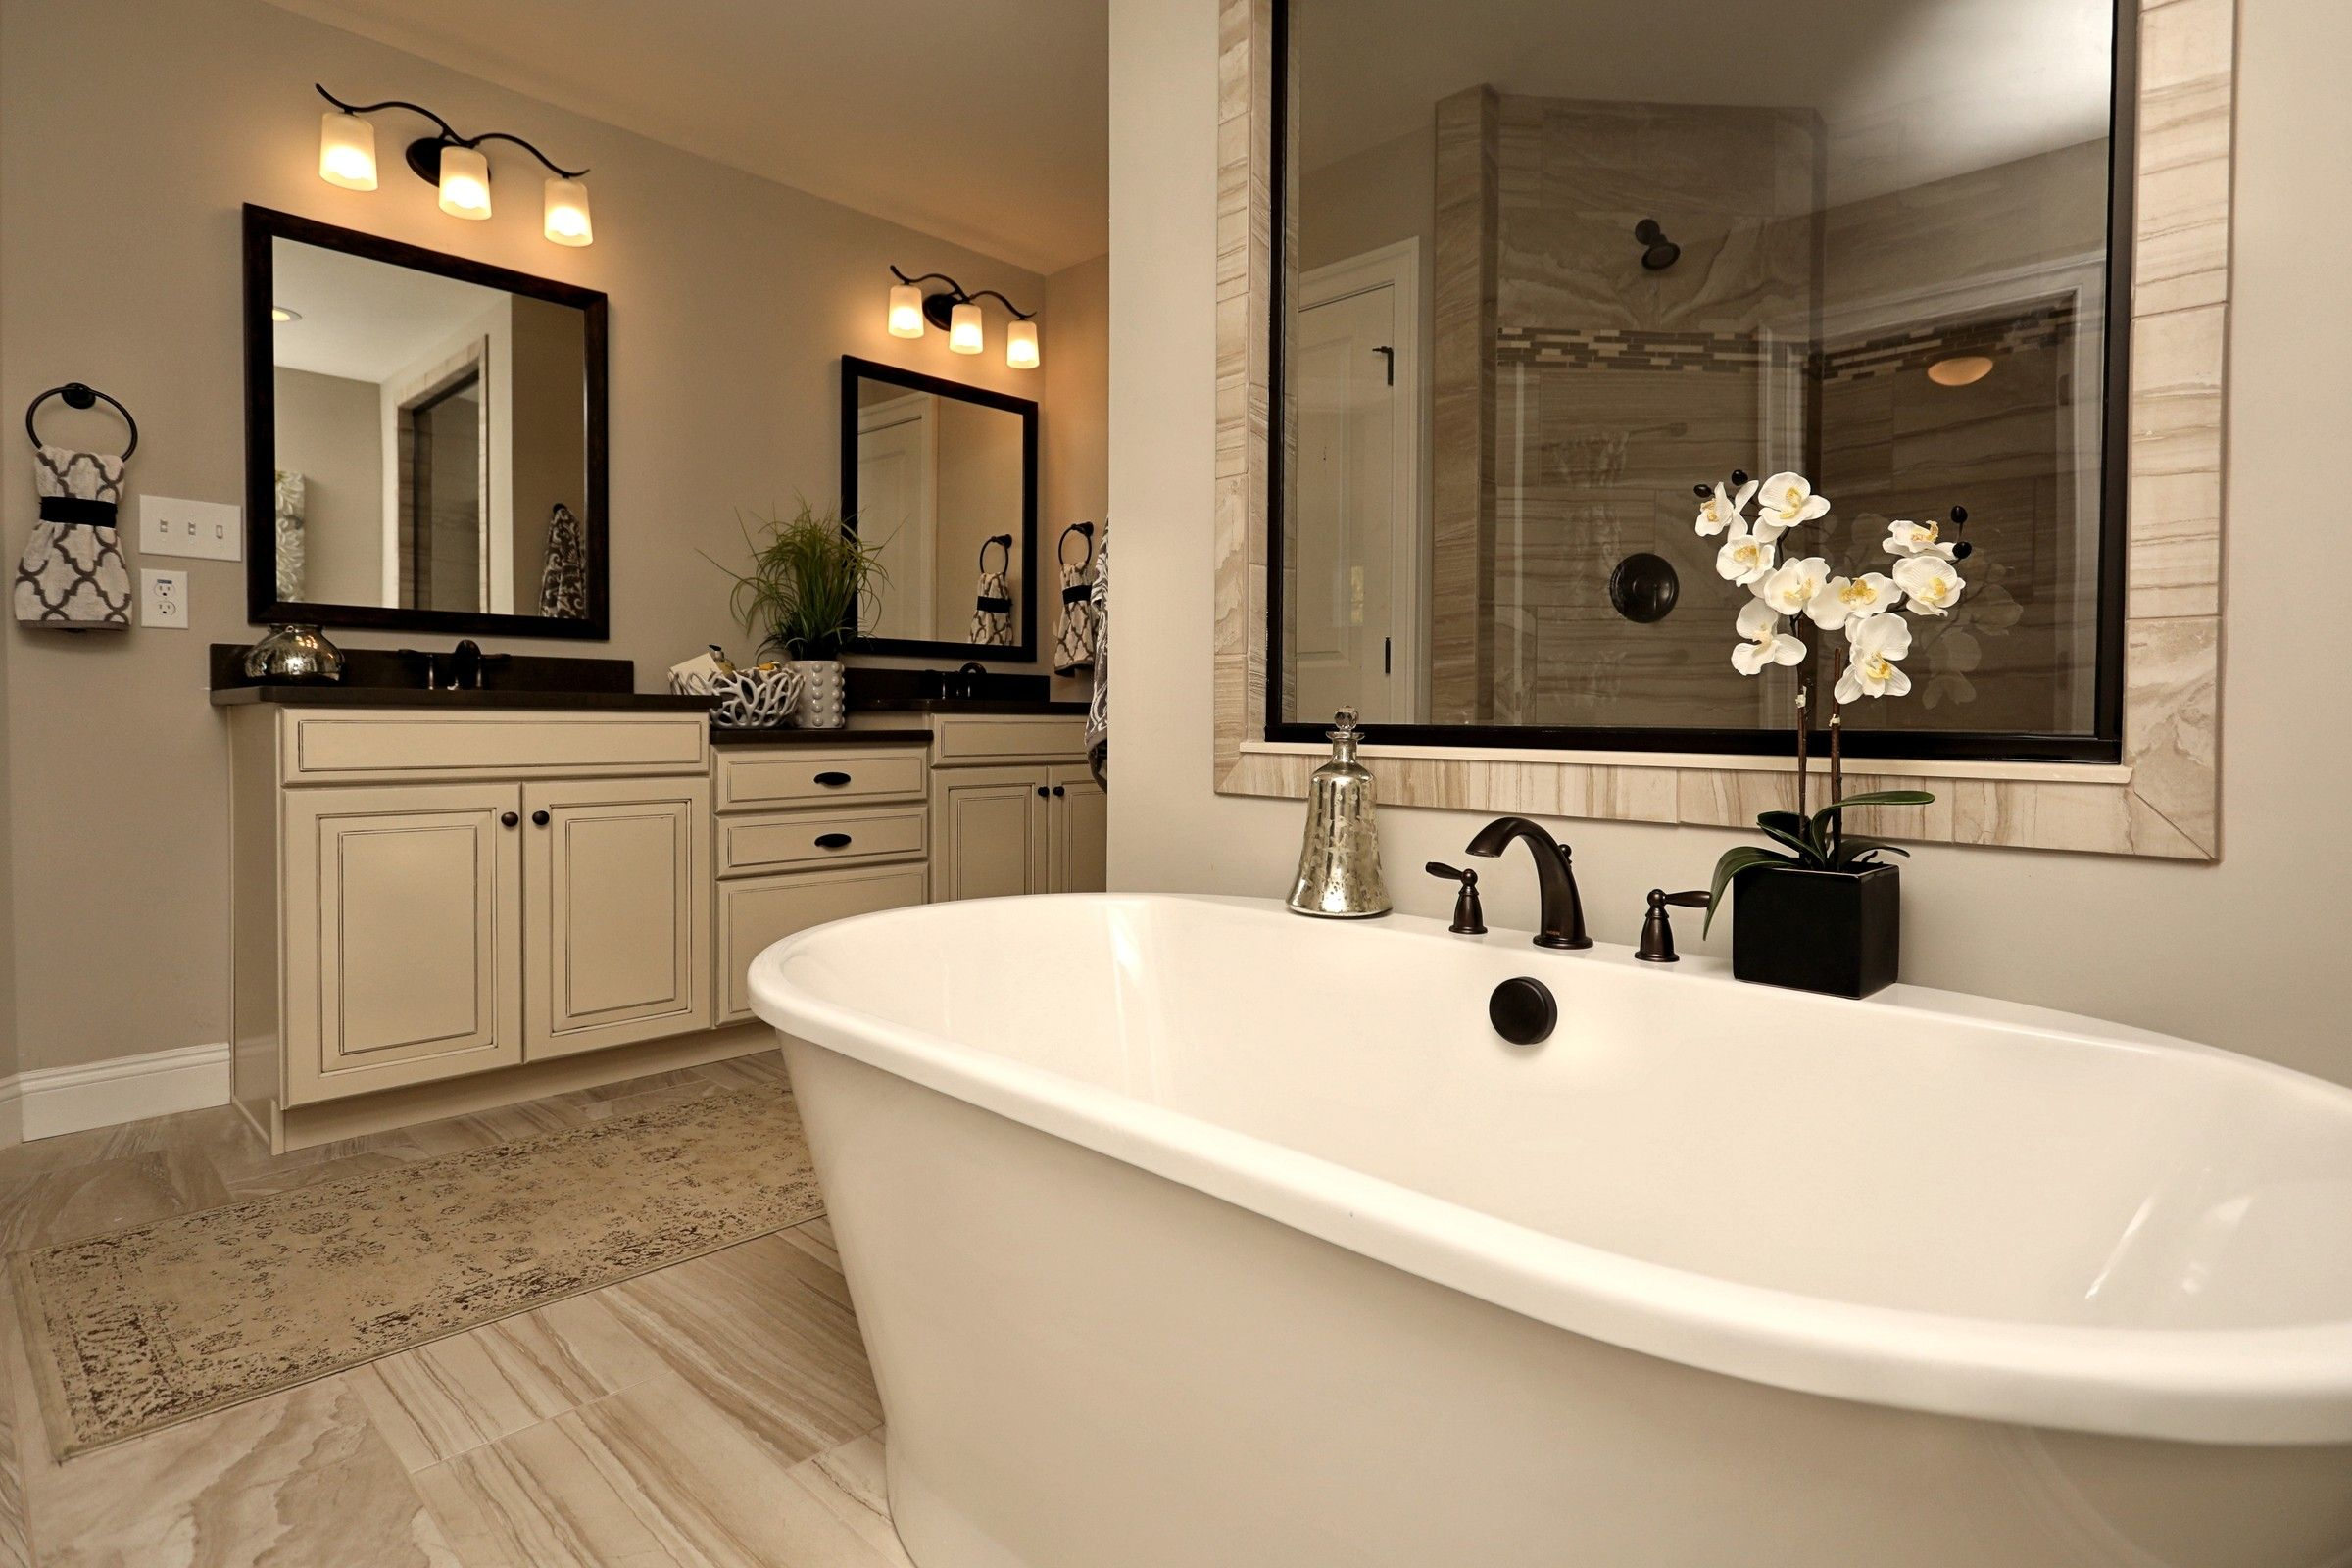 Bathroom featured in the Oxford Heritage By Keystone Custom Homes in Lancaster, PA